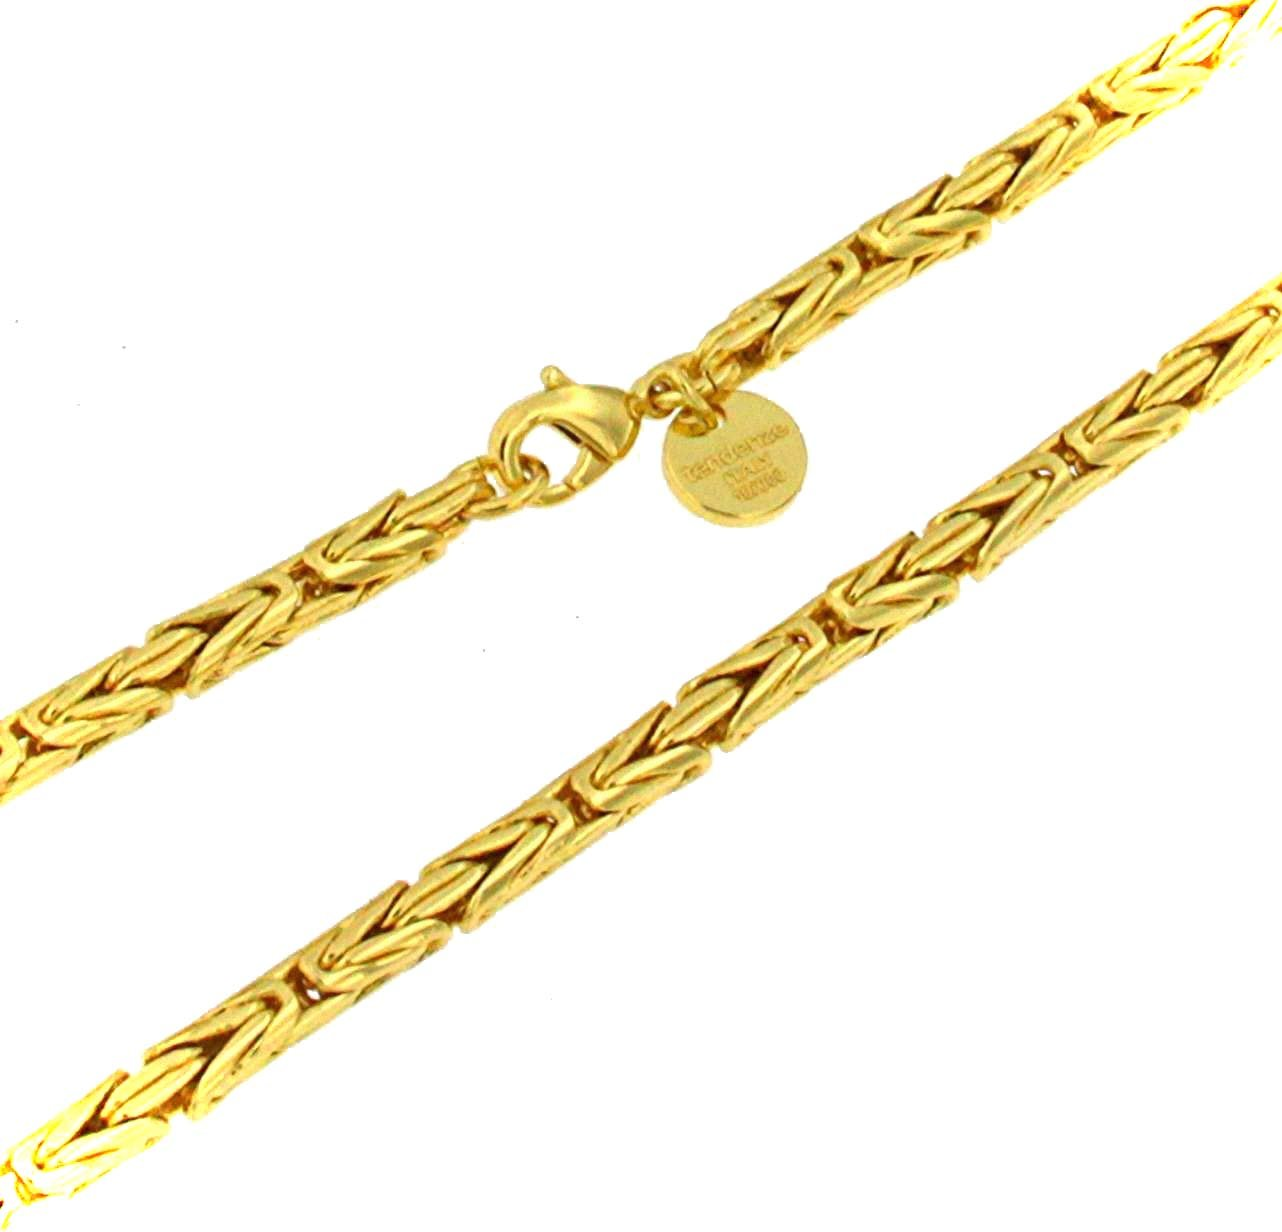 Round Byzantine Chain Necklace 18ct Gold Doublé Width 3.5 mm/0.14'', Length 65cm/25.59'', Men Women Jewelry Gift From Italian Factory tendenze BZGYRds3,5-65